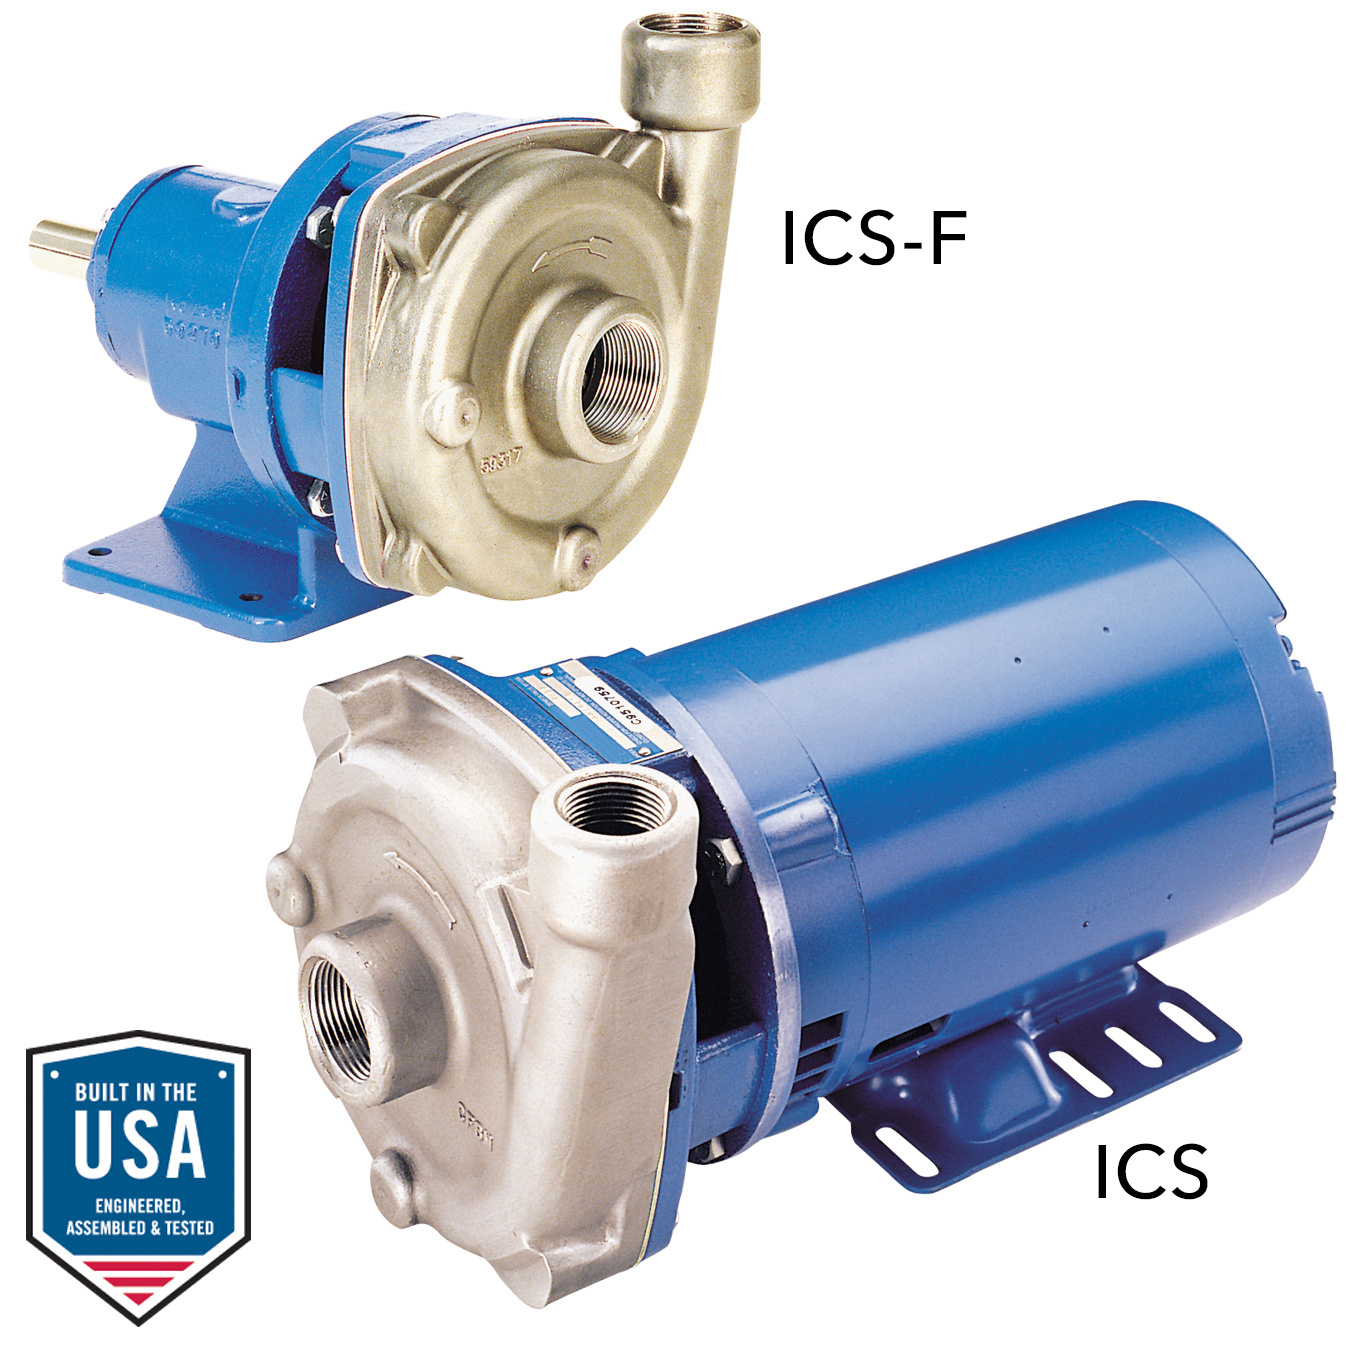 ICS/ICSF Stainless Steel Pumps